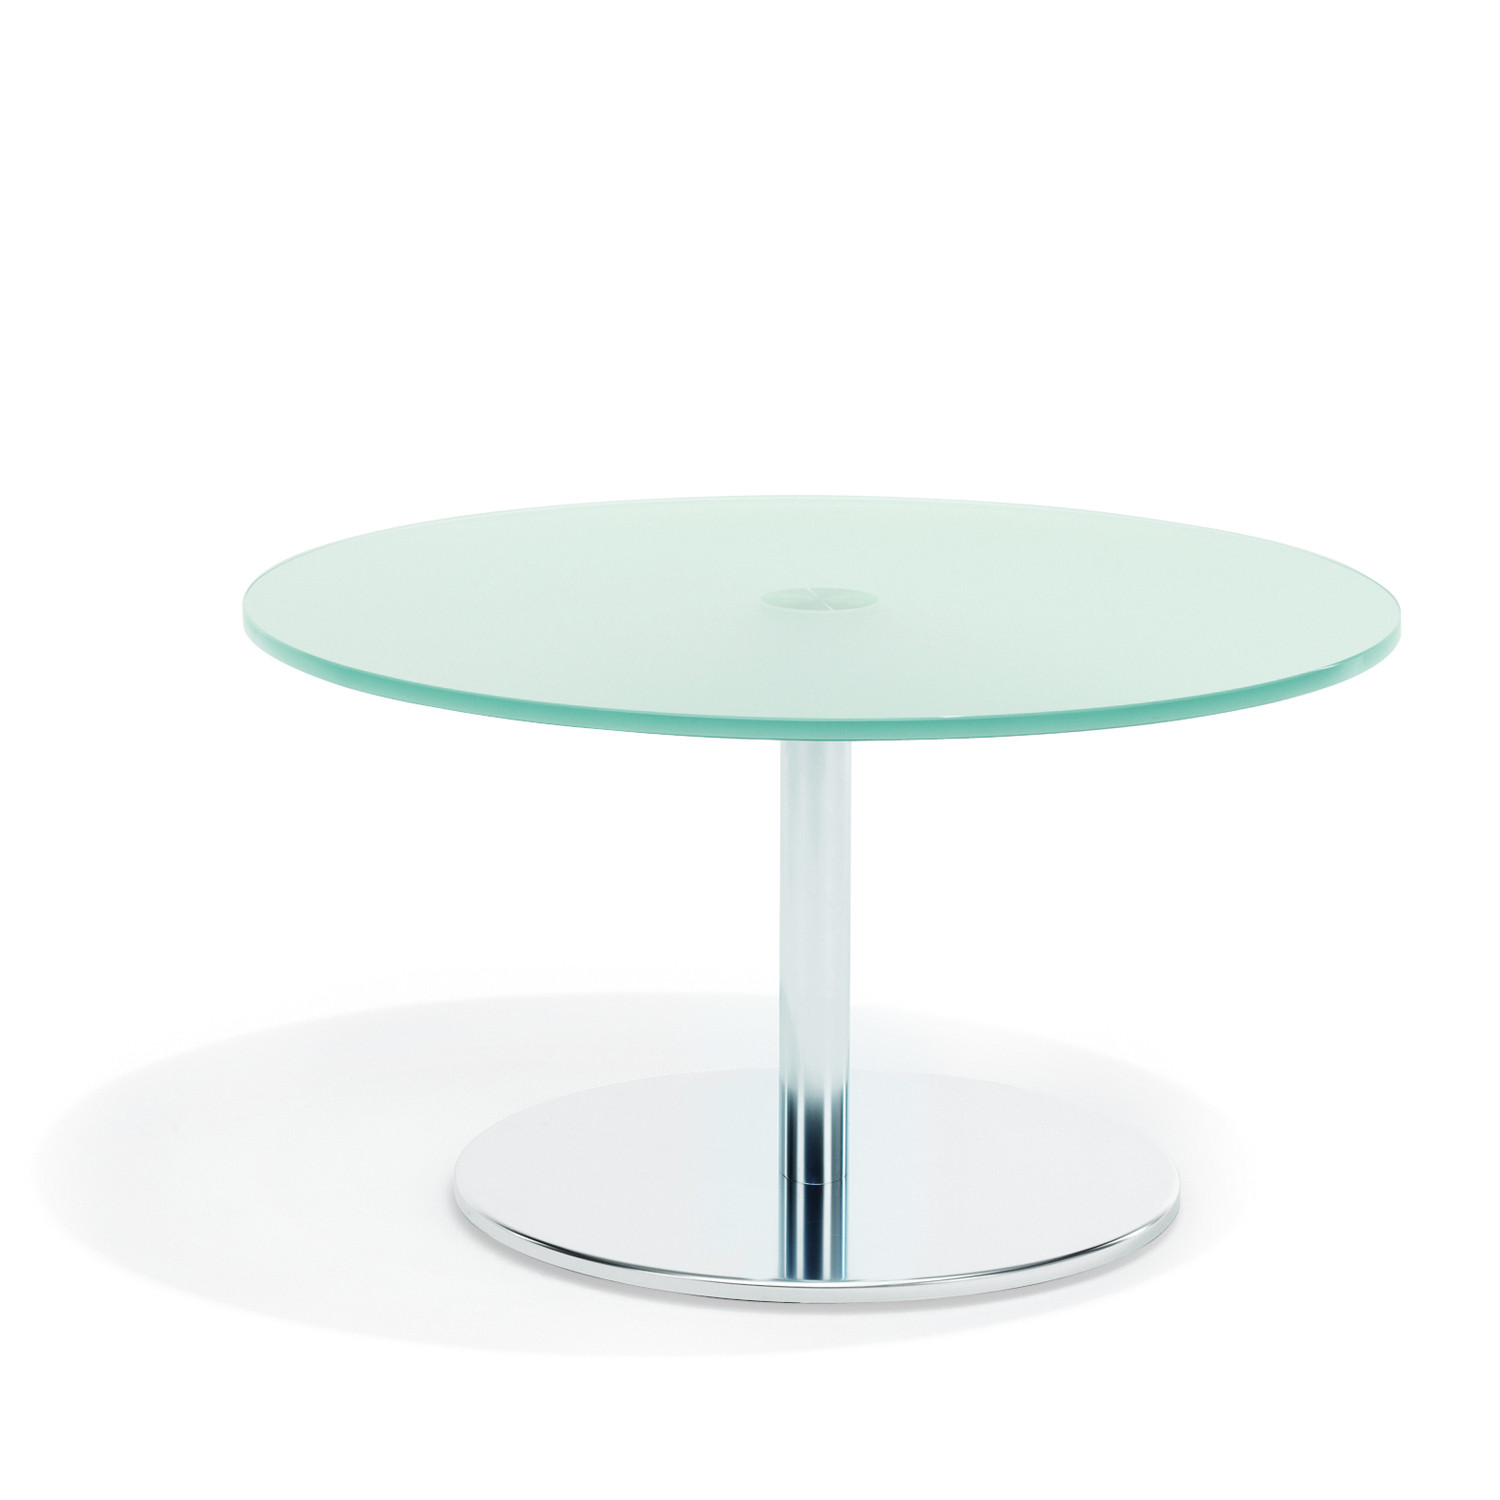 8200 Volpe Glass Coffee Table with base plate